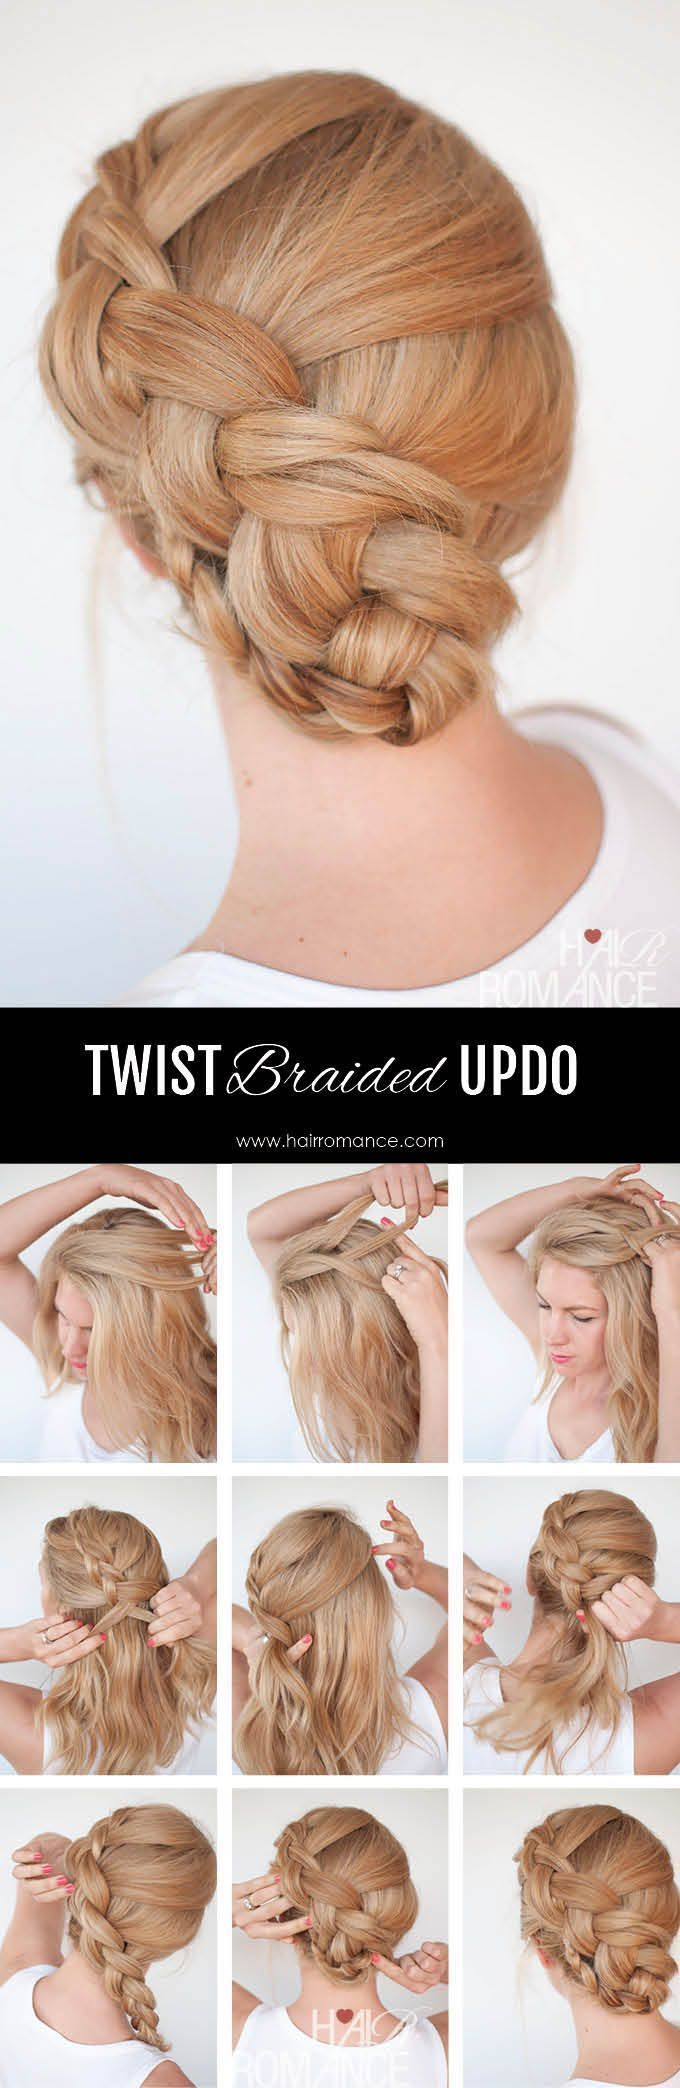 New braid hairstyle tutorial – the twist braid u…